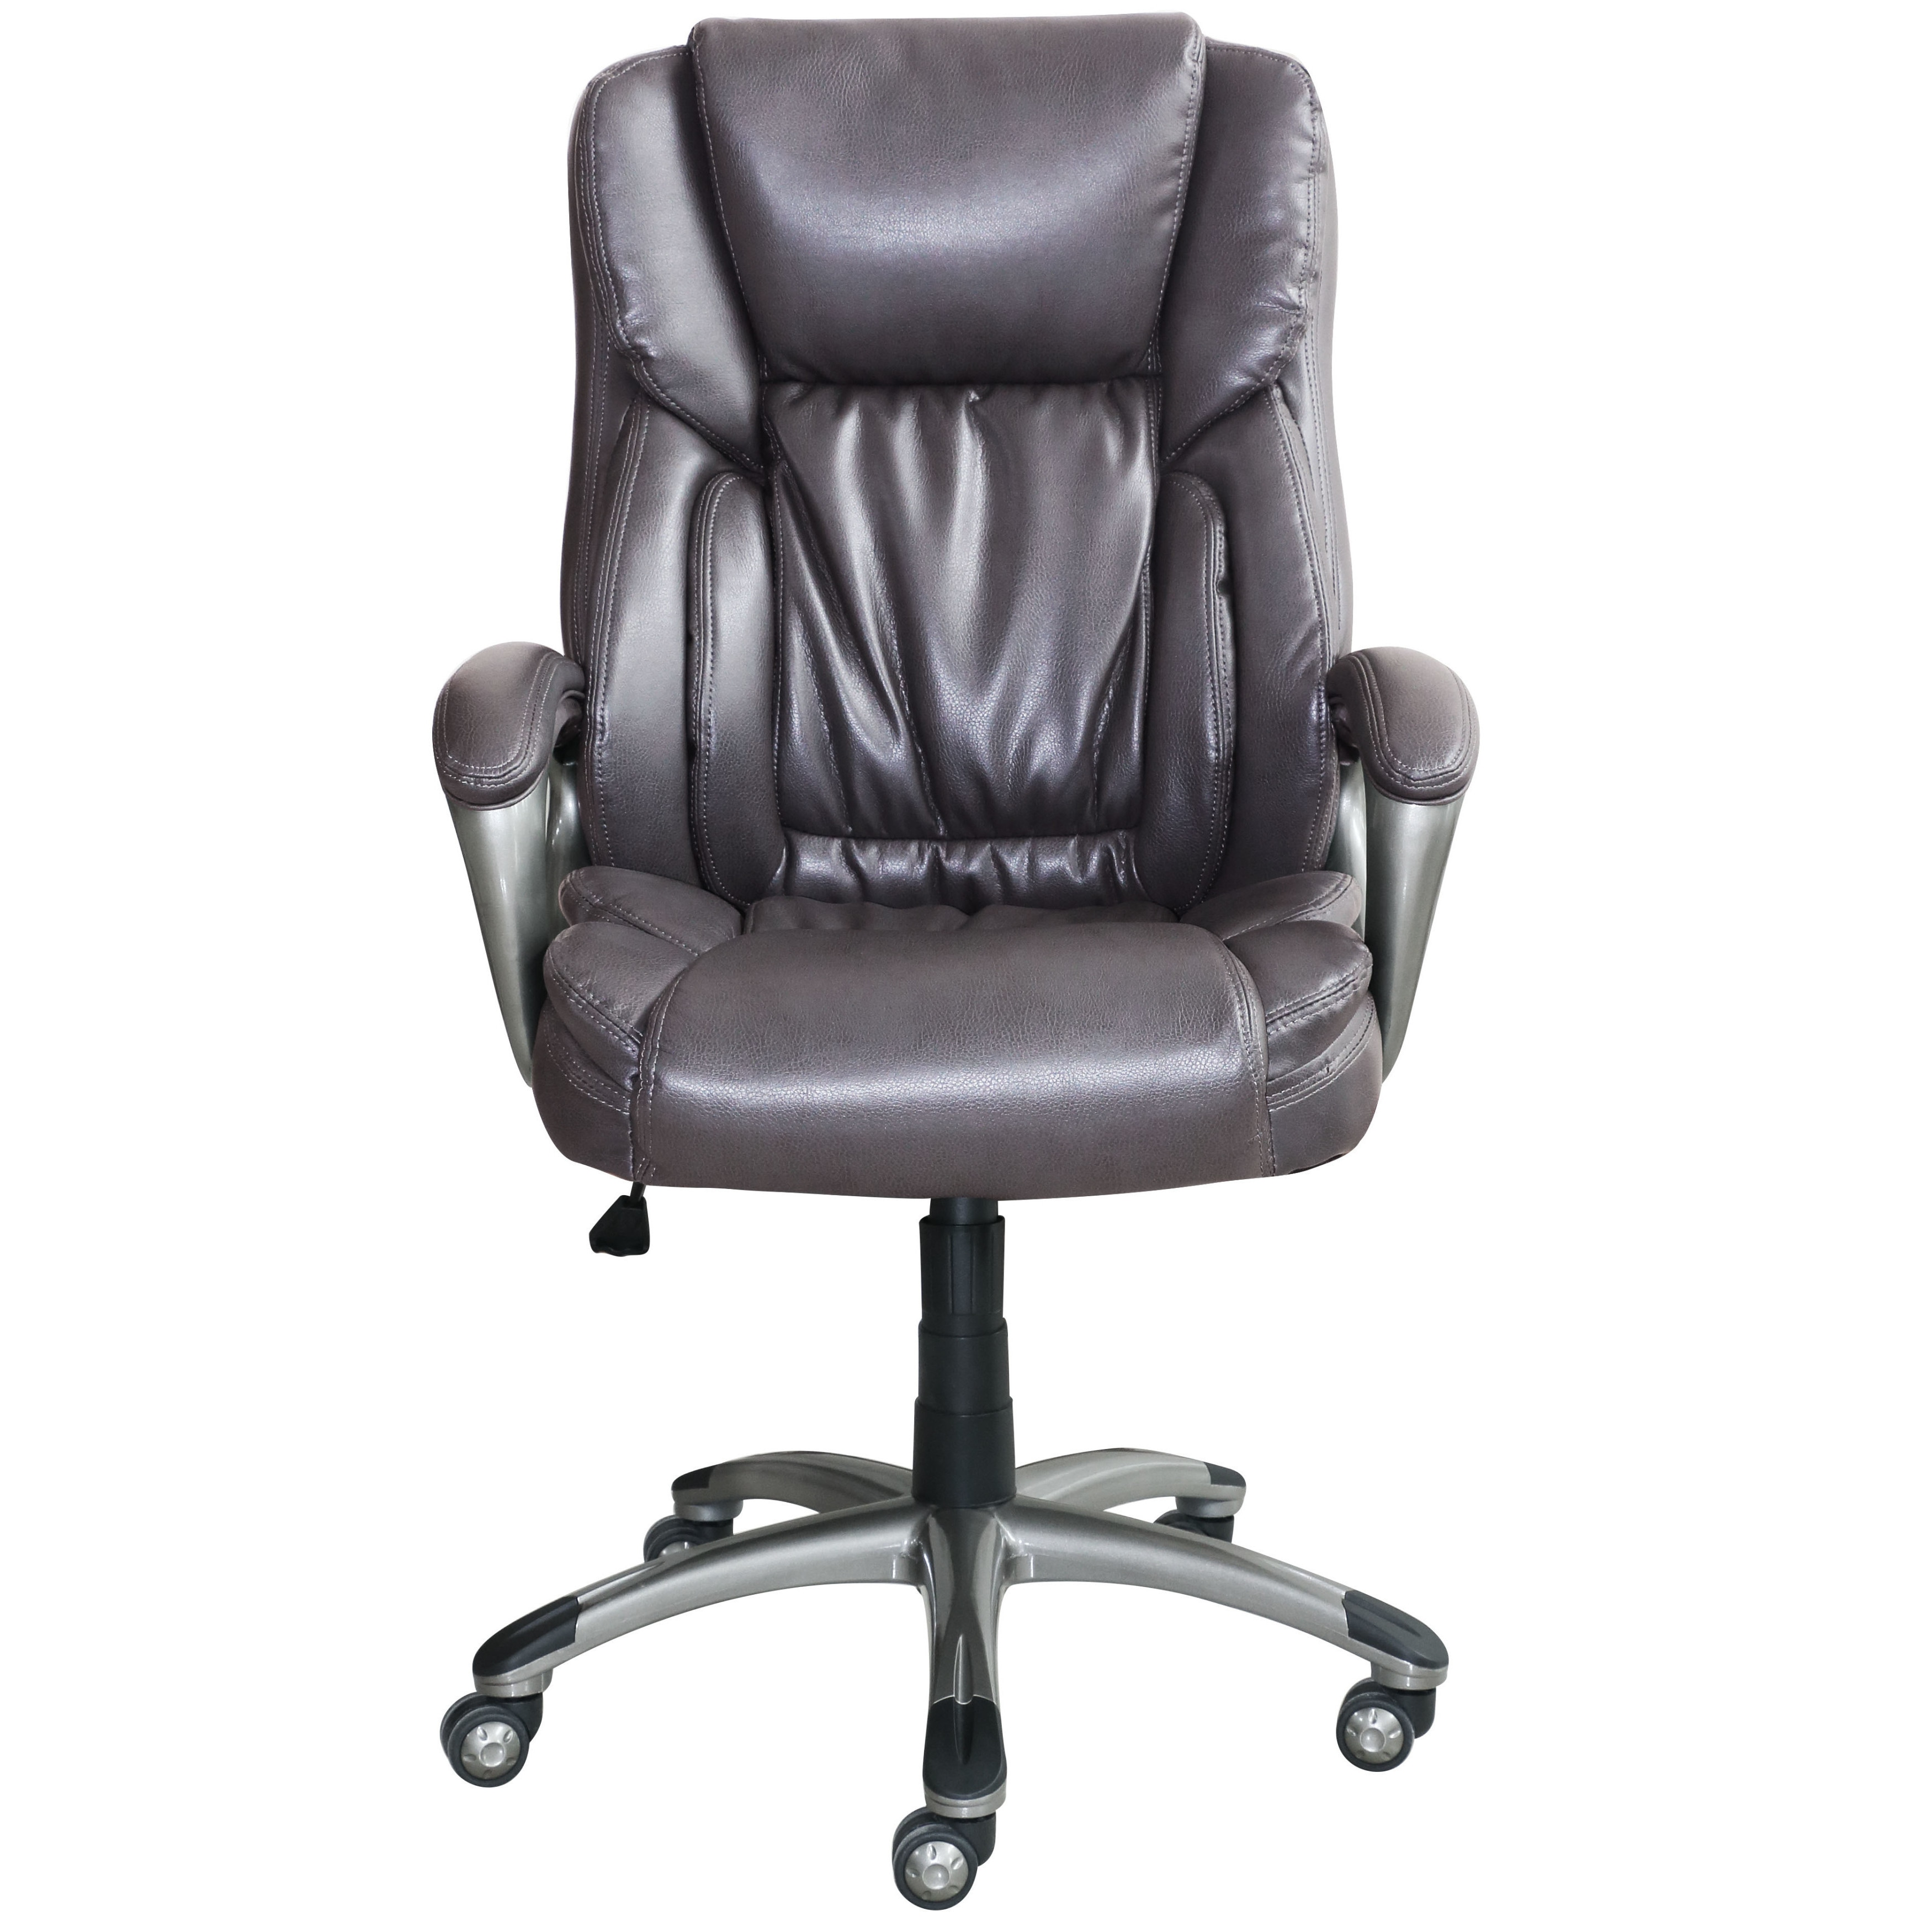 Serta Works Bonded Leather Executive Office Chair Free Shipping Today 18010940